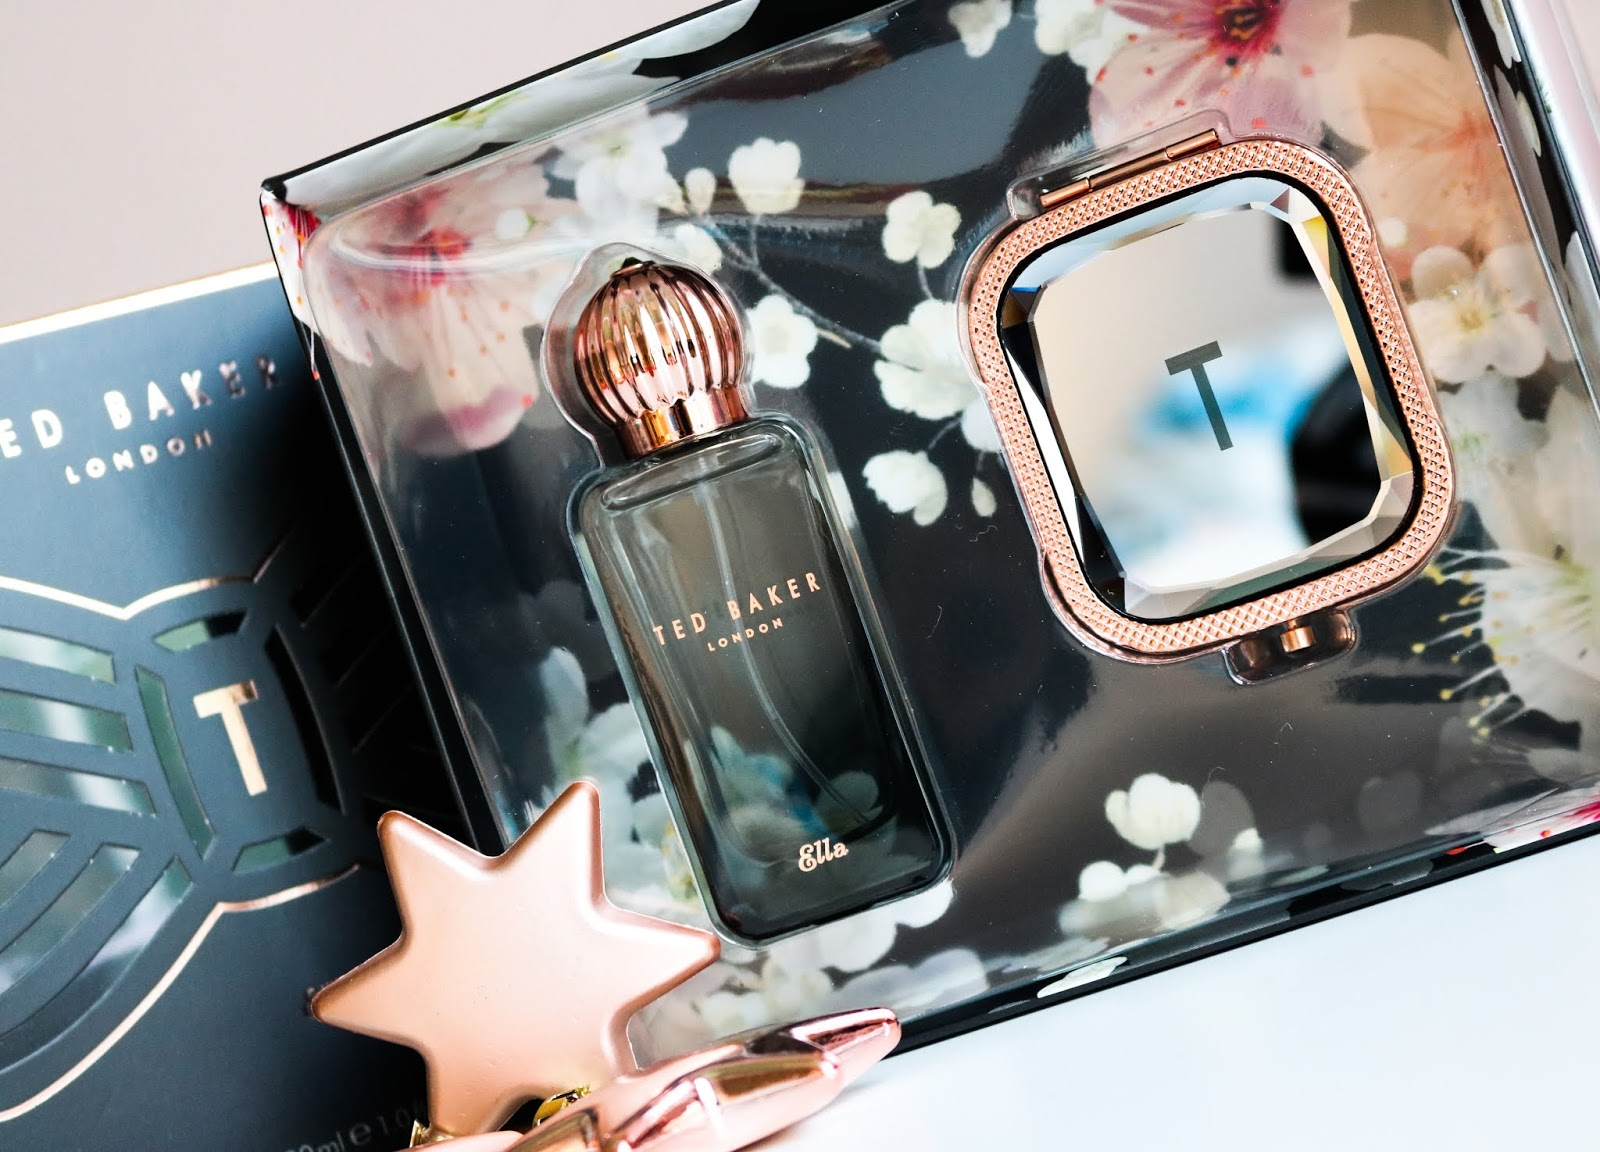 8d6306680c59 Ella is an intoxicating scent with top notes of bergamot and cassis and  floral heart notes of orange blossom